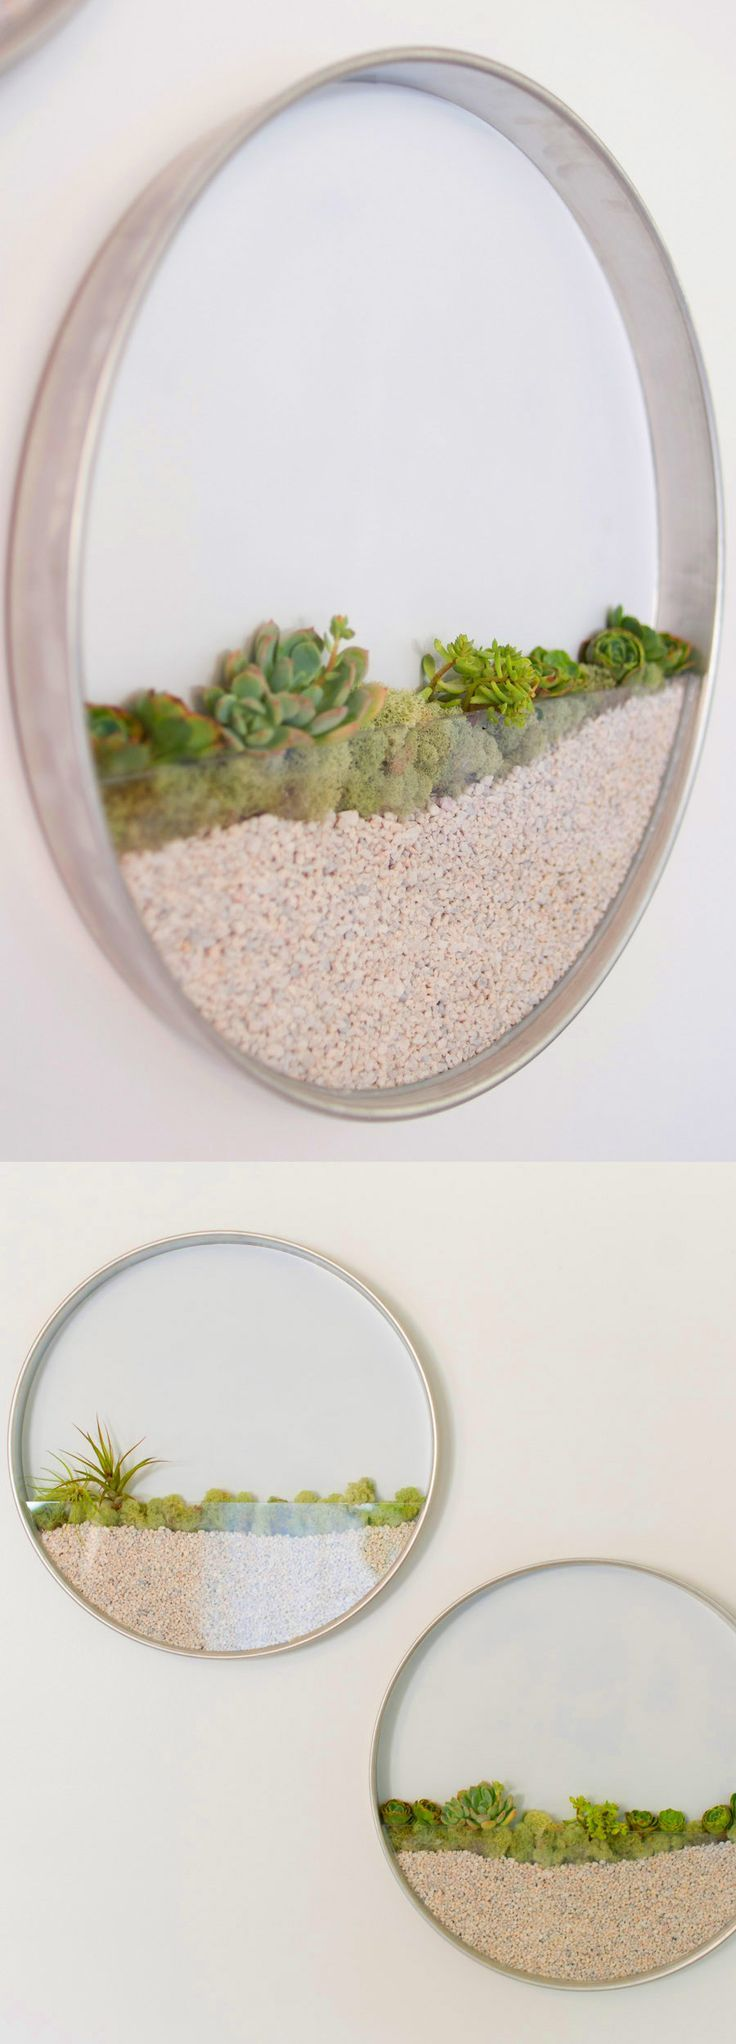 Circular Framed Planters Add Living Art to Your Walls – lynn @ nourish and nestle | creative living and delicious eating